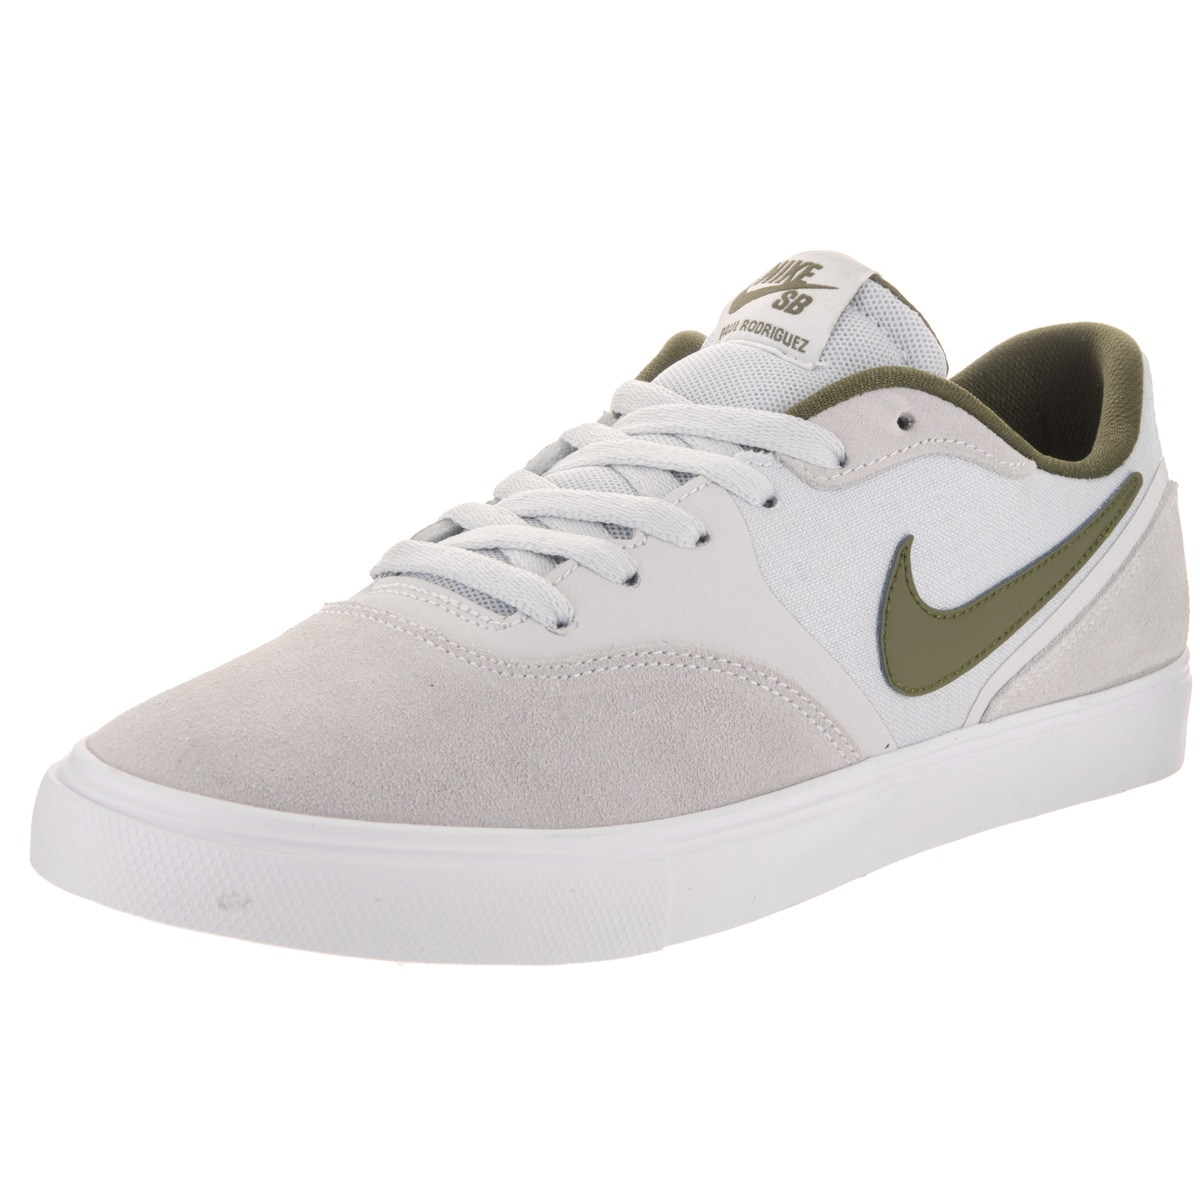 online store 87aa8 f9011 Shop Nike Men s Paul Rodriguez 9 VR Grey Suede Skate Shoe - Free Shipping  Today - Overstock - 14163359